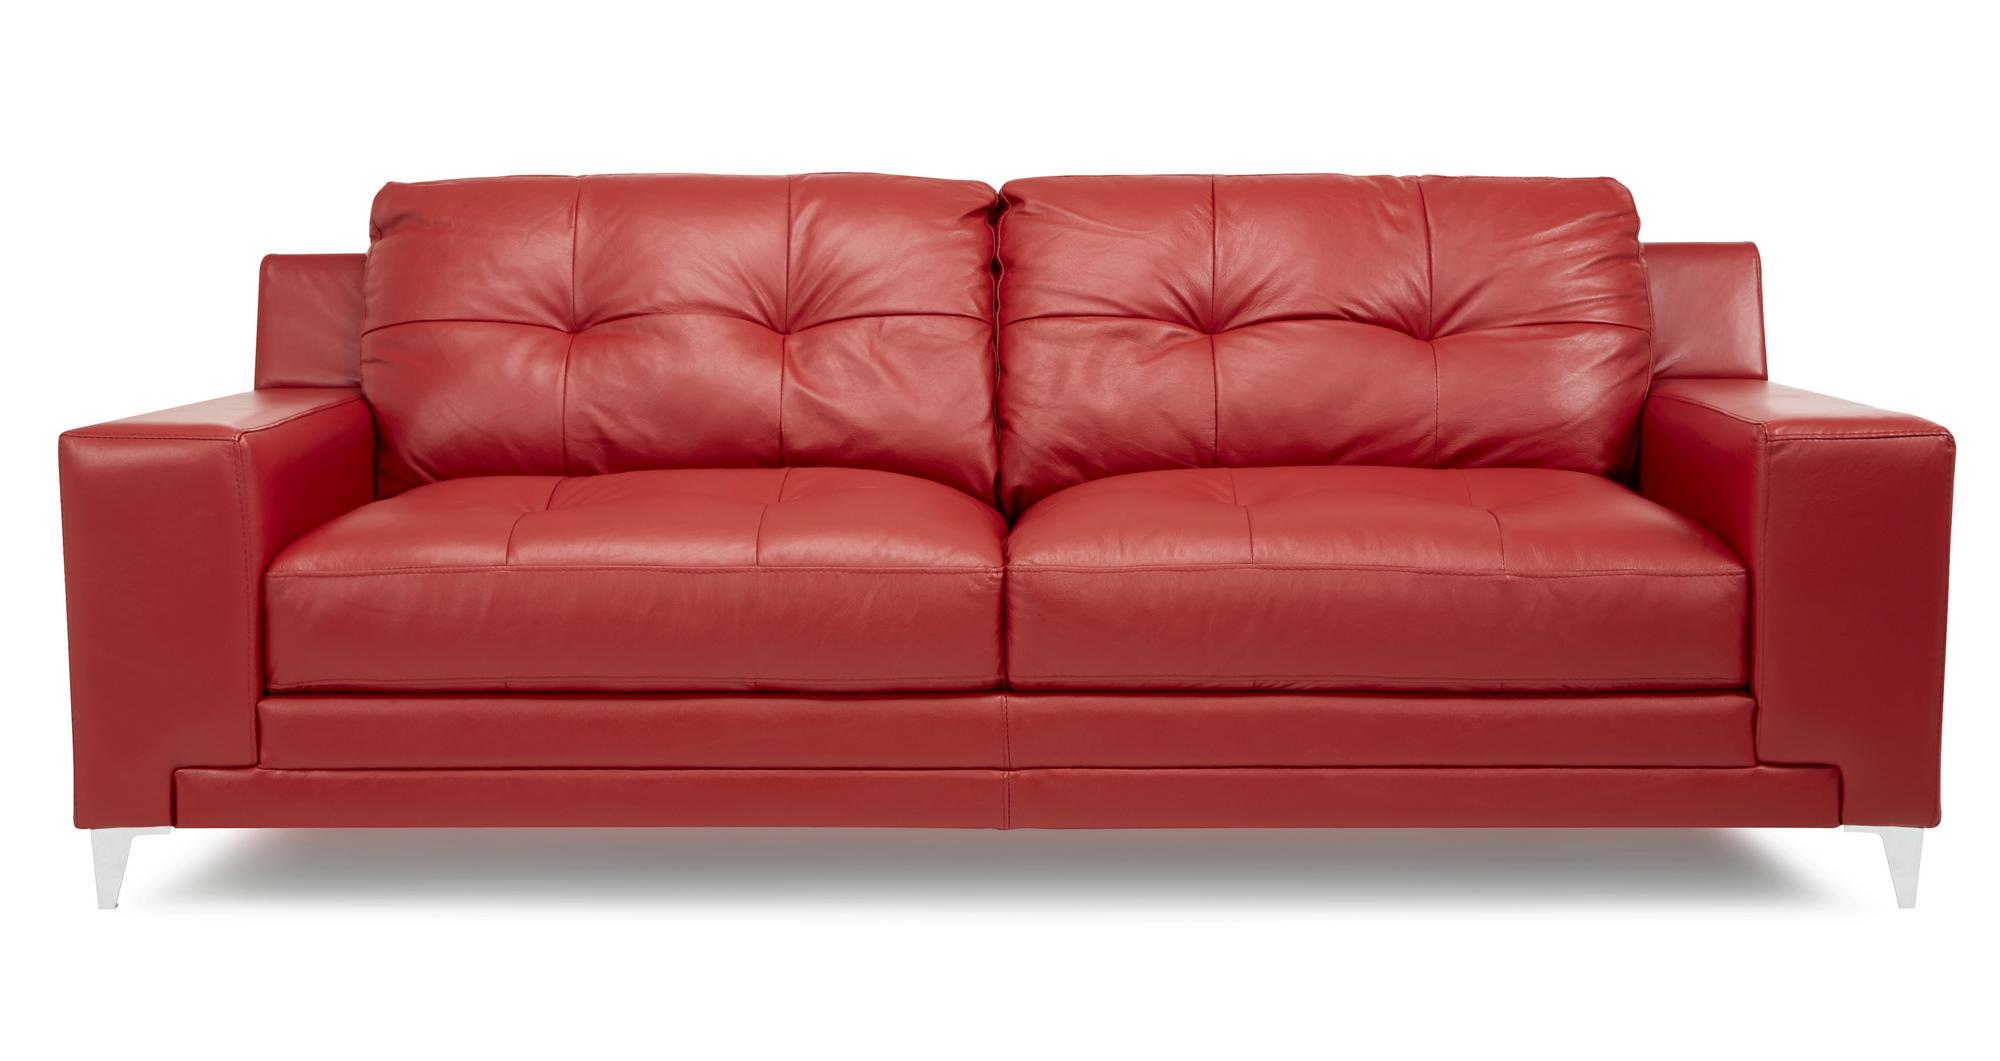 DFS Domain Enzo Red Leather 3 Seater 2 Seater Arm Chair